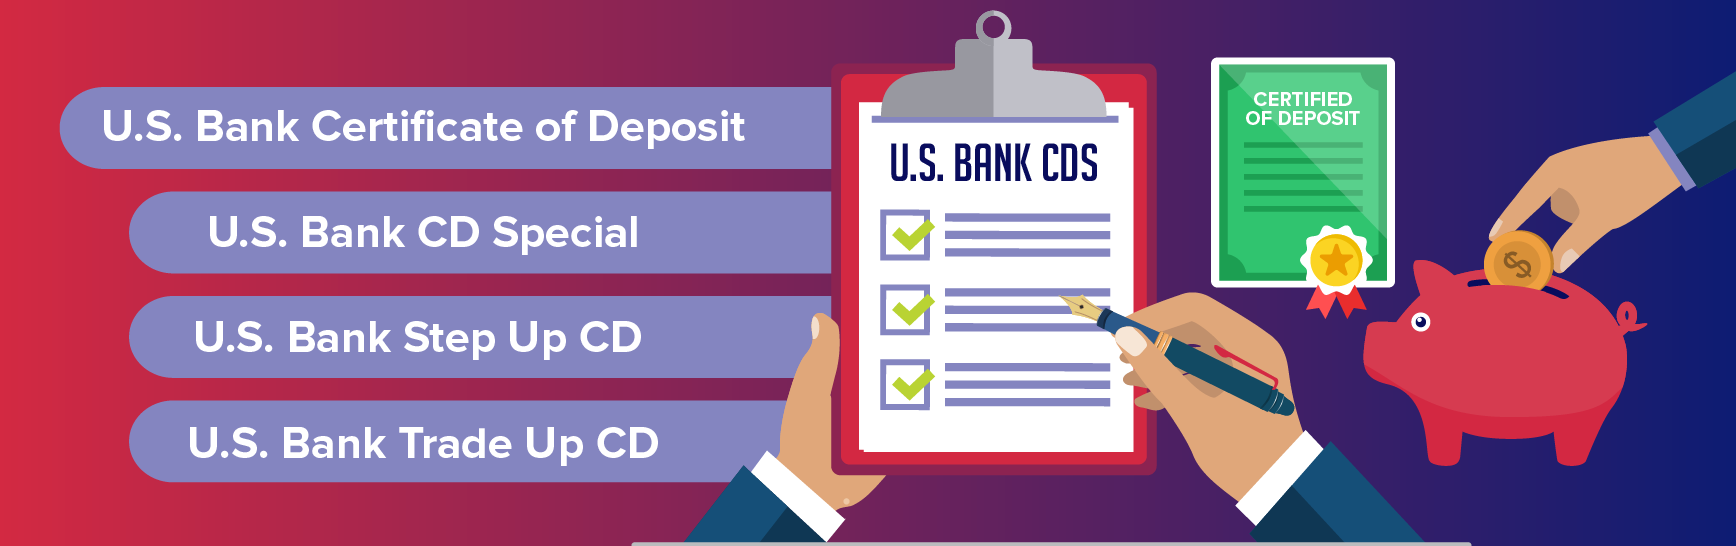 Different types of U.S. Bank CDs